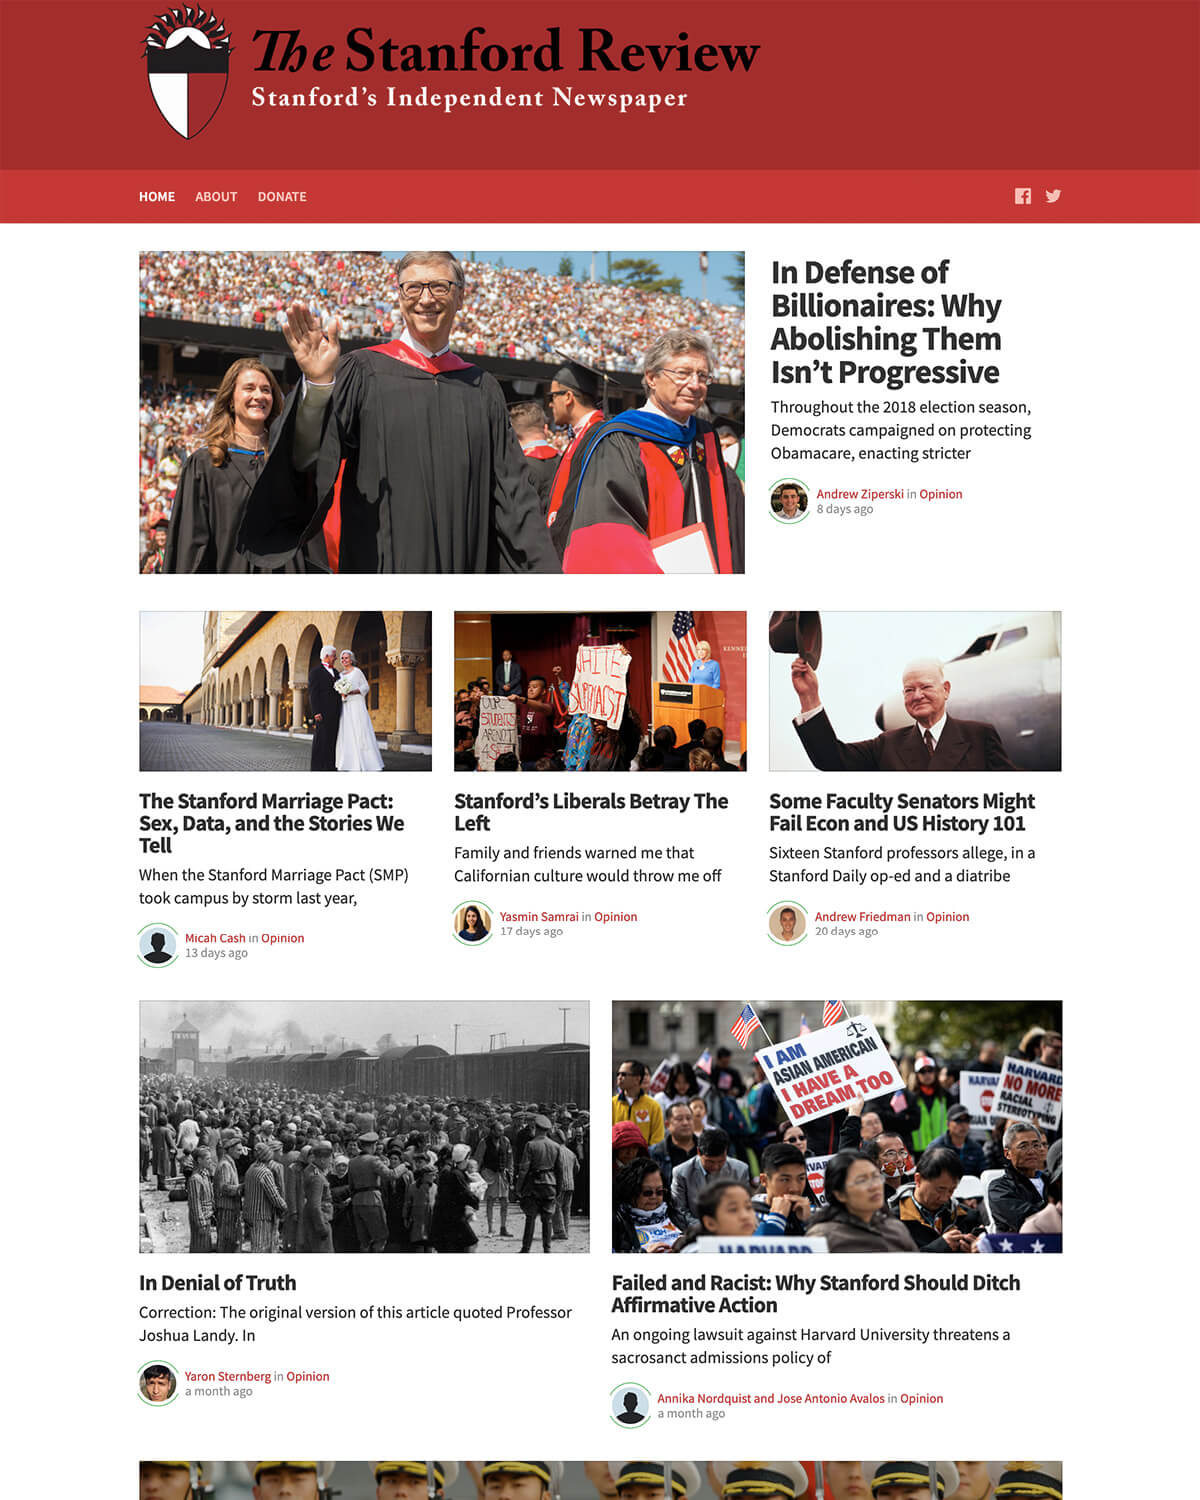 The Stanford Review theme